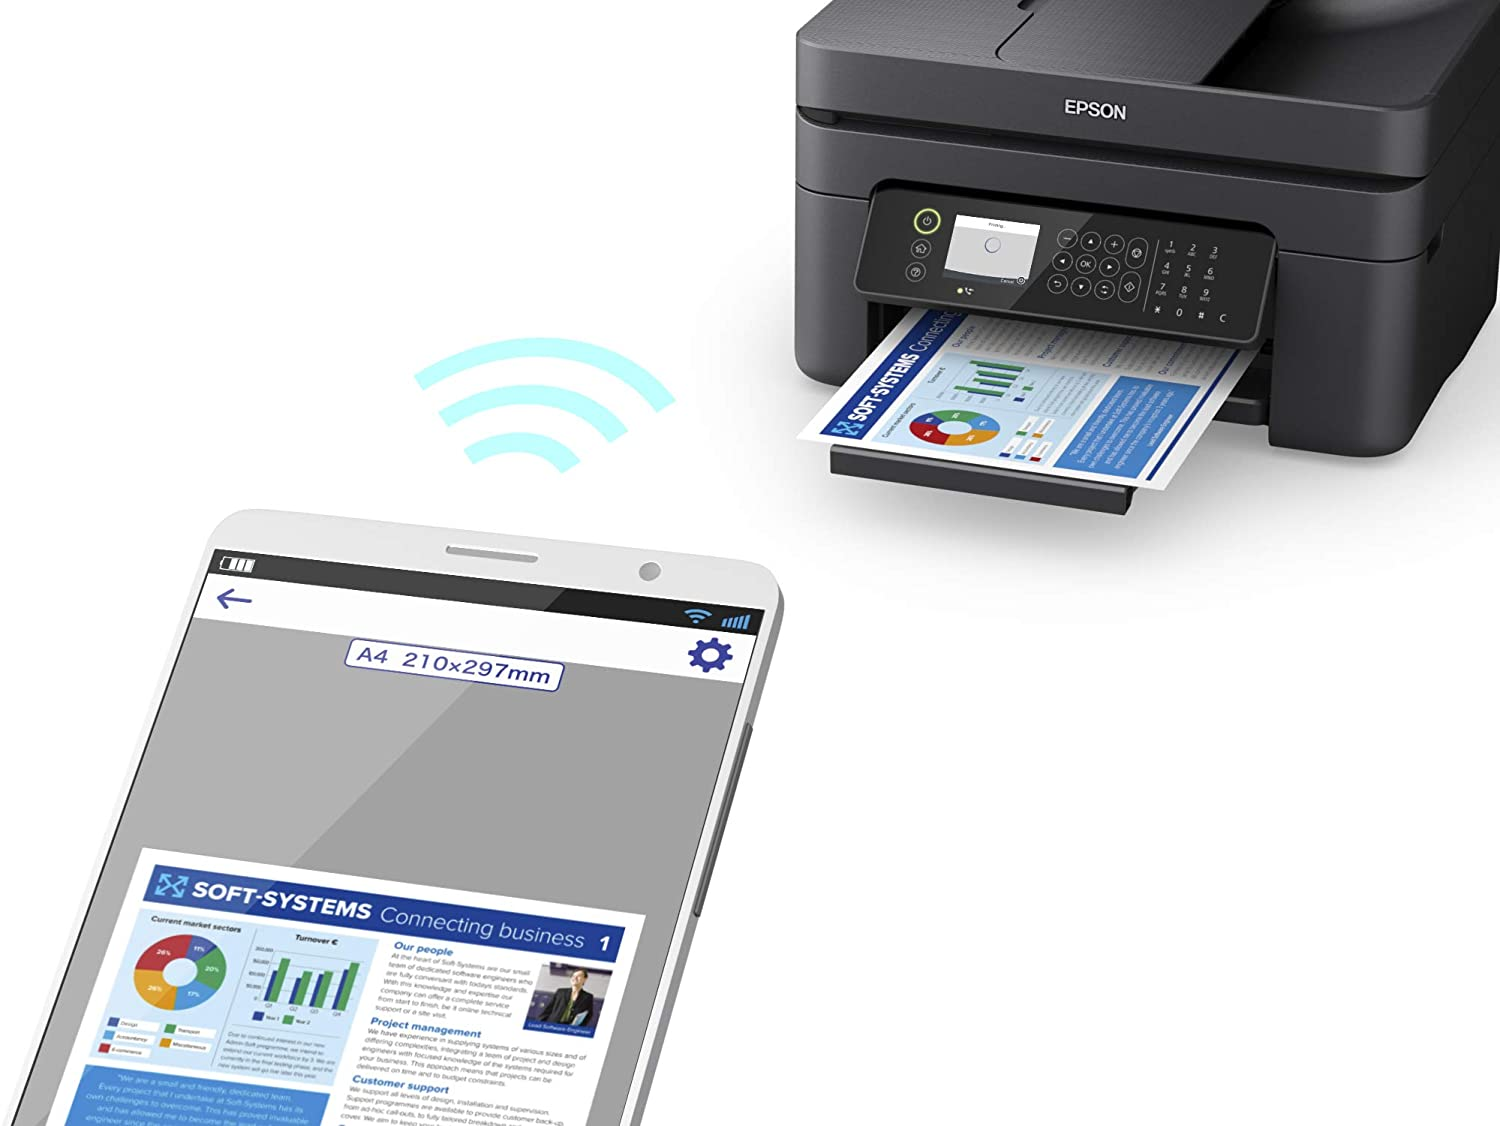 impresora epson workforce wf-2850dwf multifuncional wifi